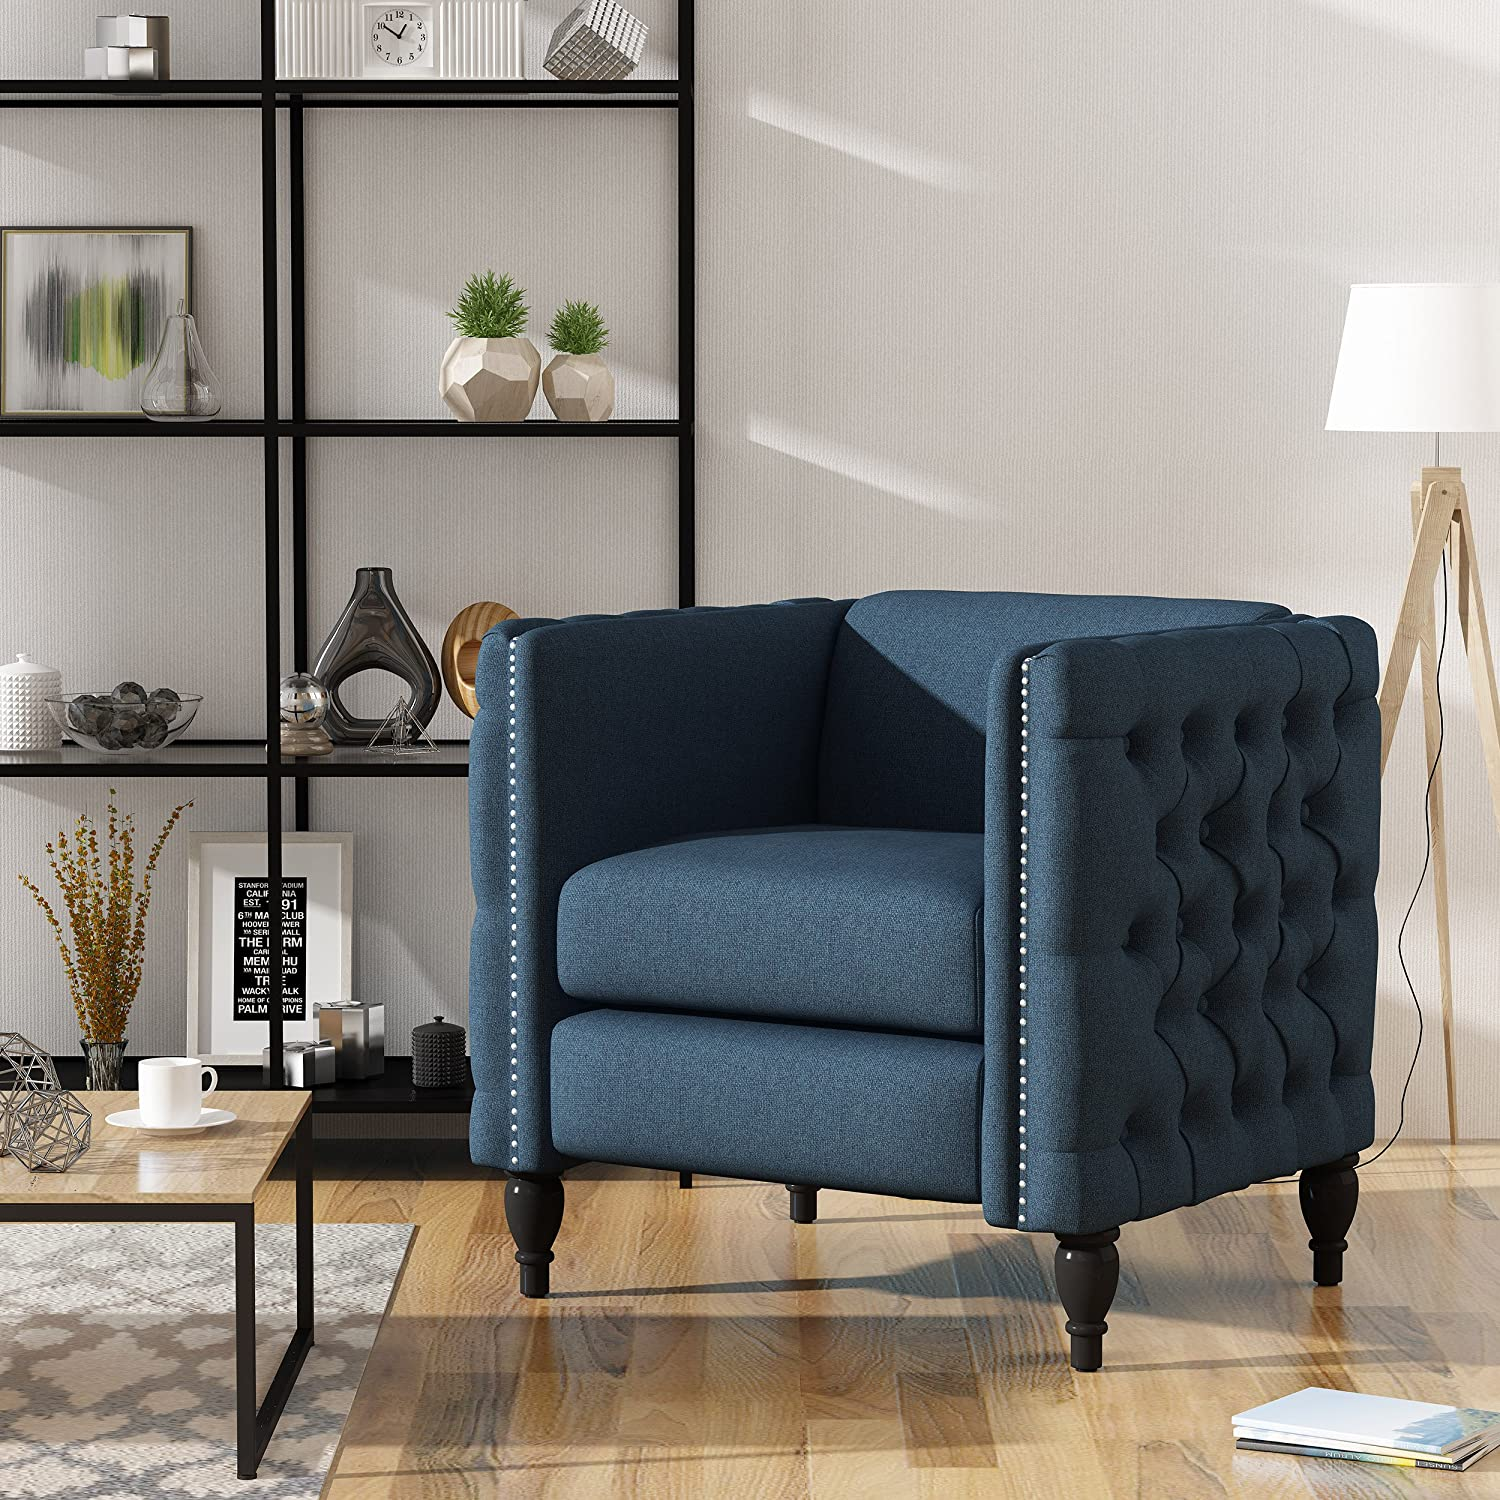 Christopher Knight Home 303944 Alice Modern Tufted Navy Blue Fabric Arm Chair